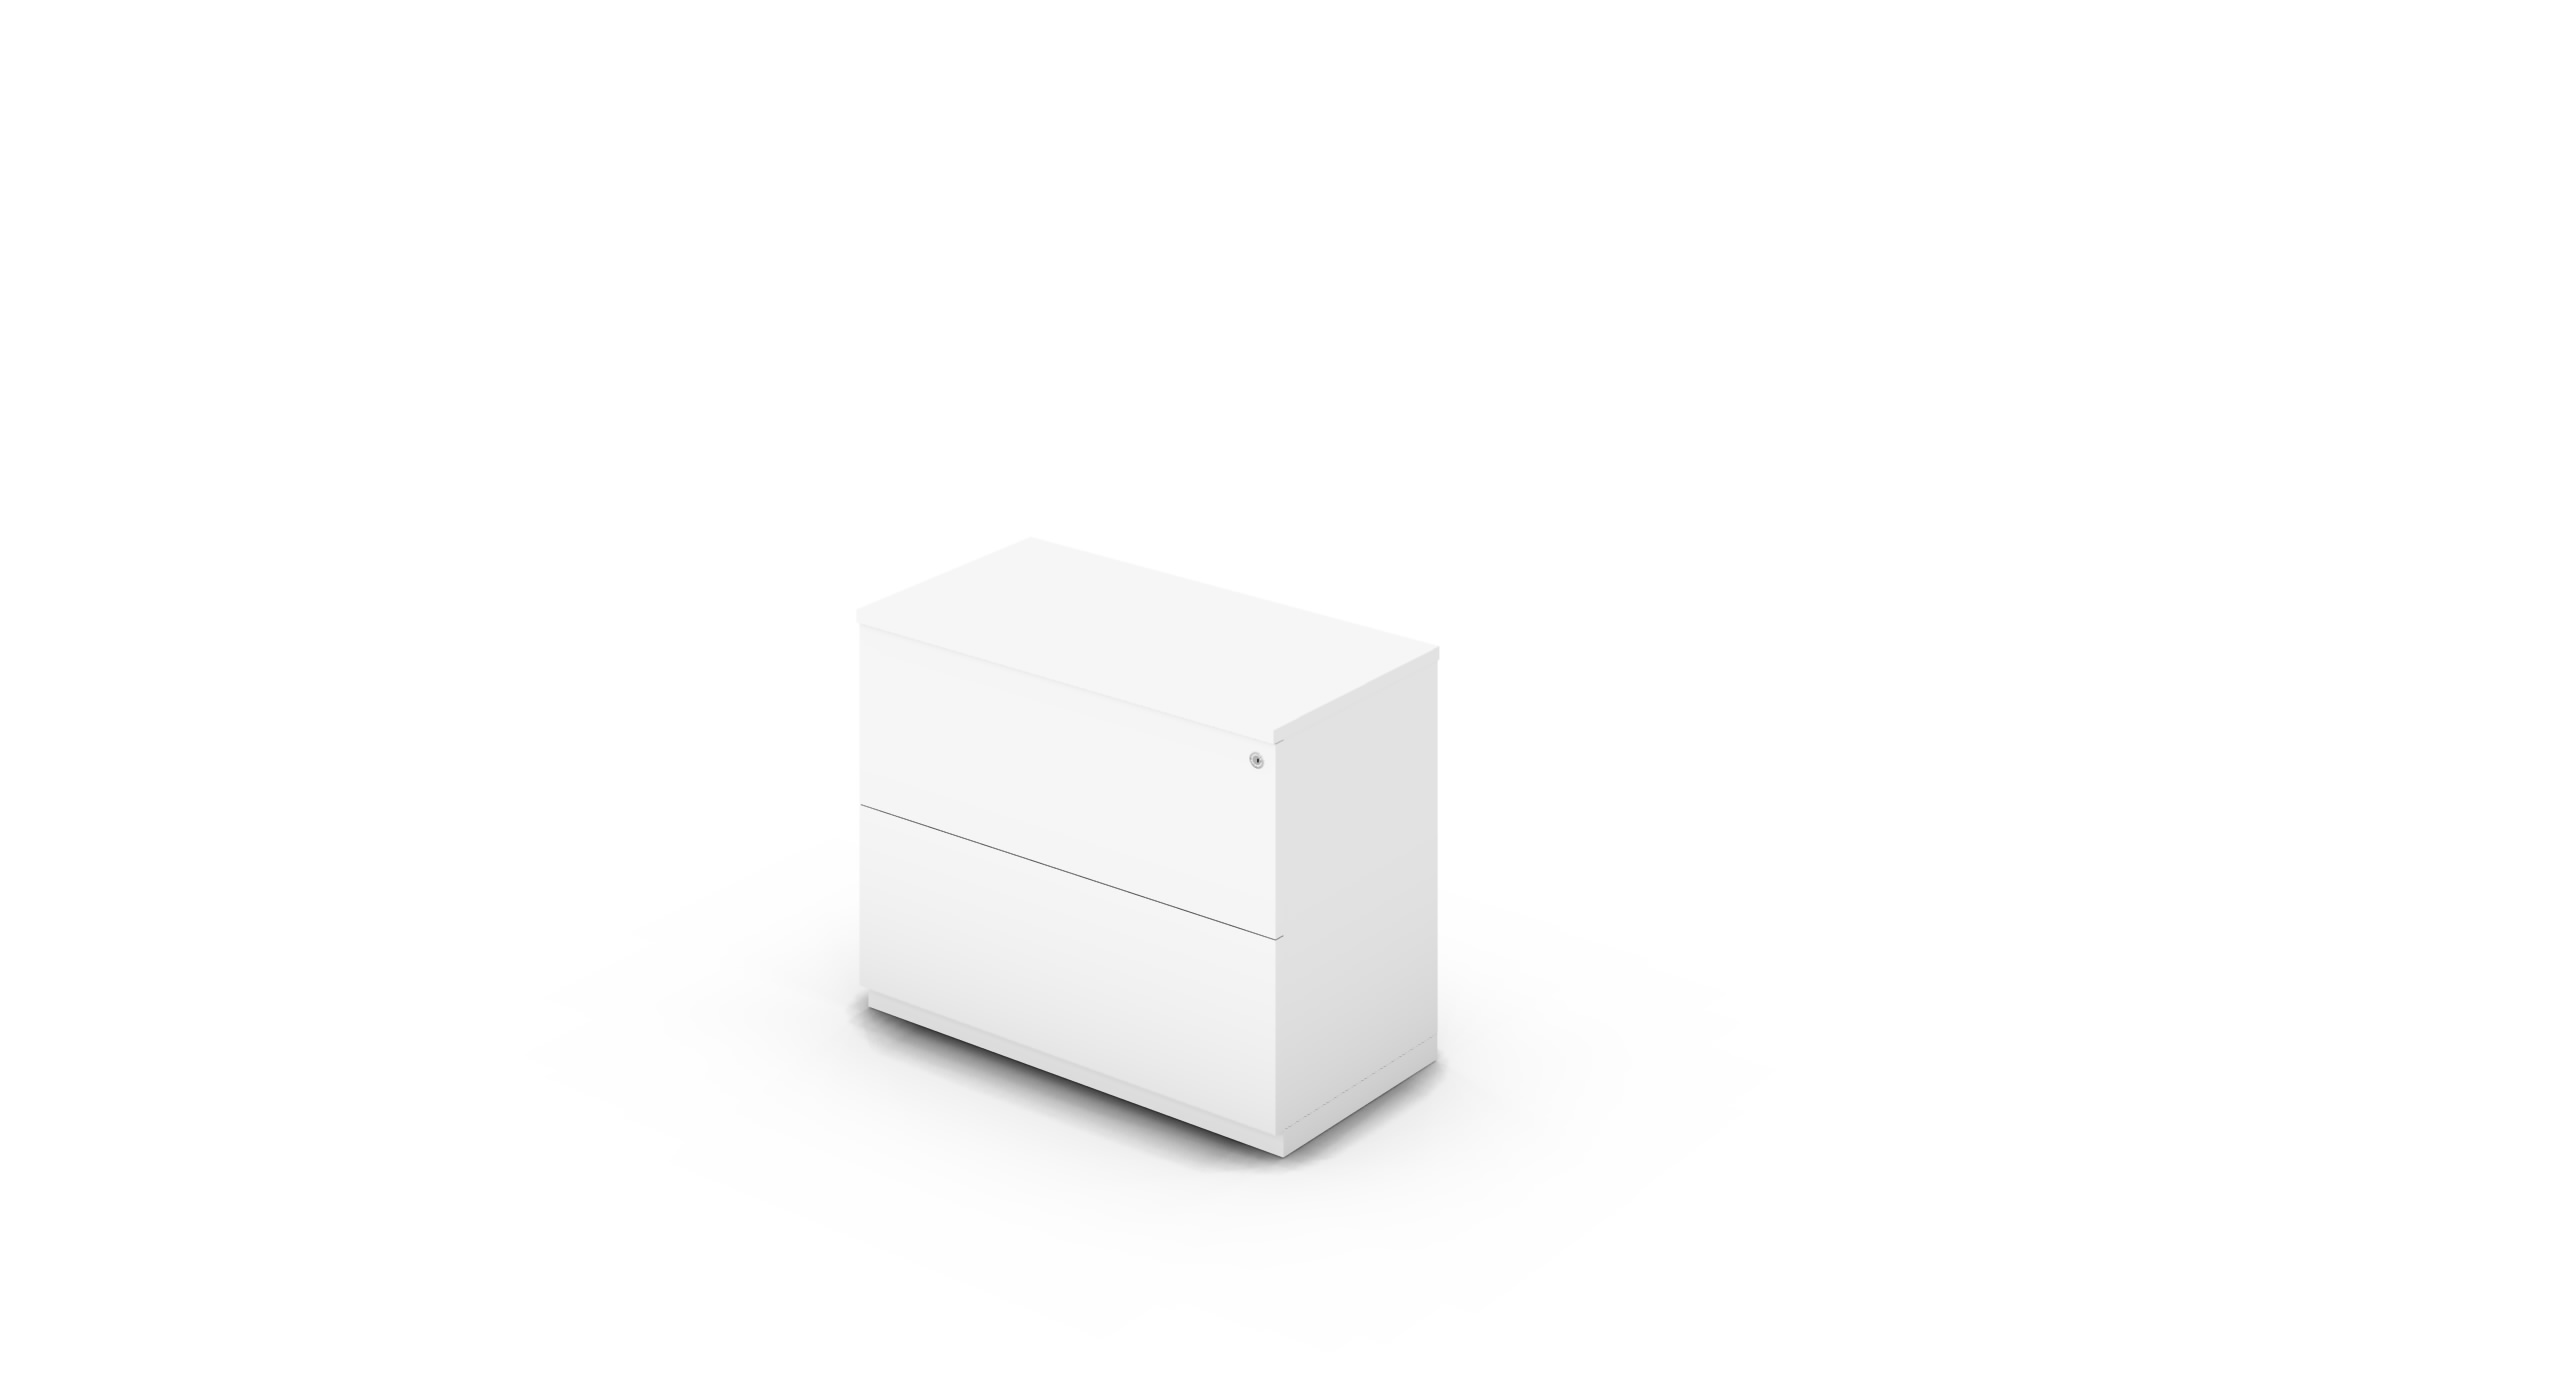 Cabinet_900x450x775_DR_White_Push_WithCylinder